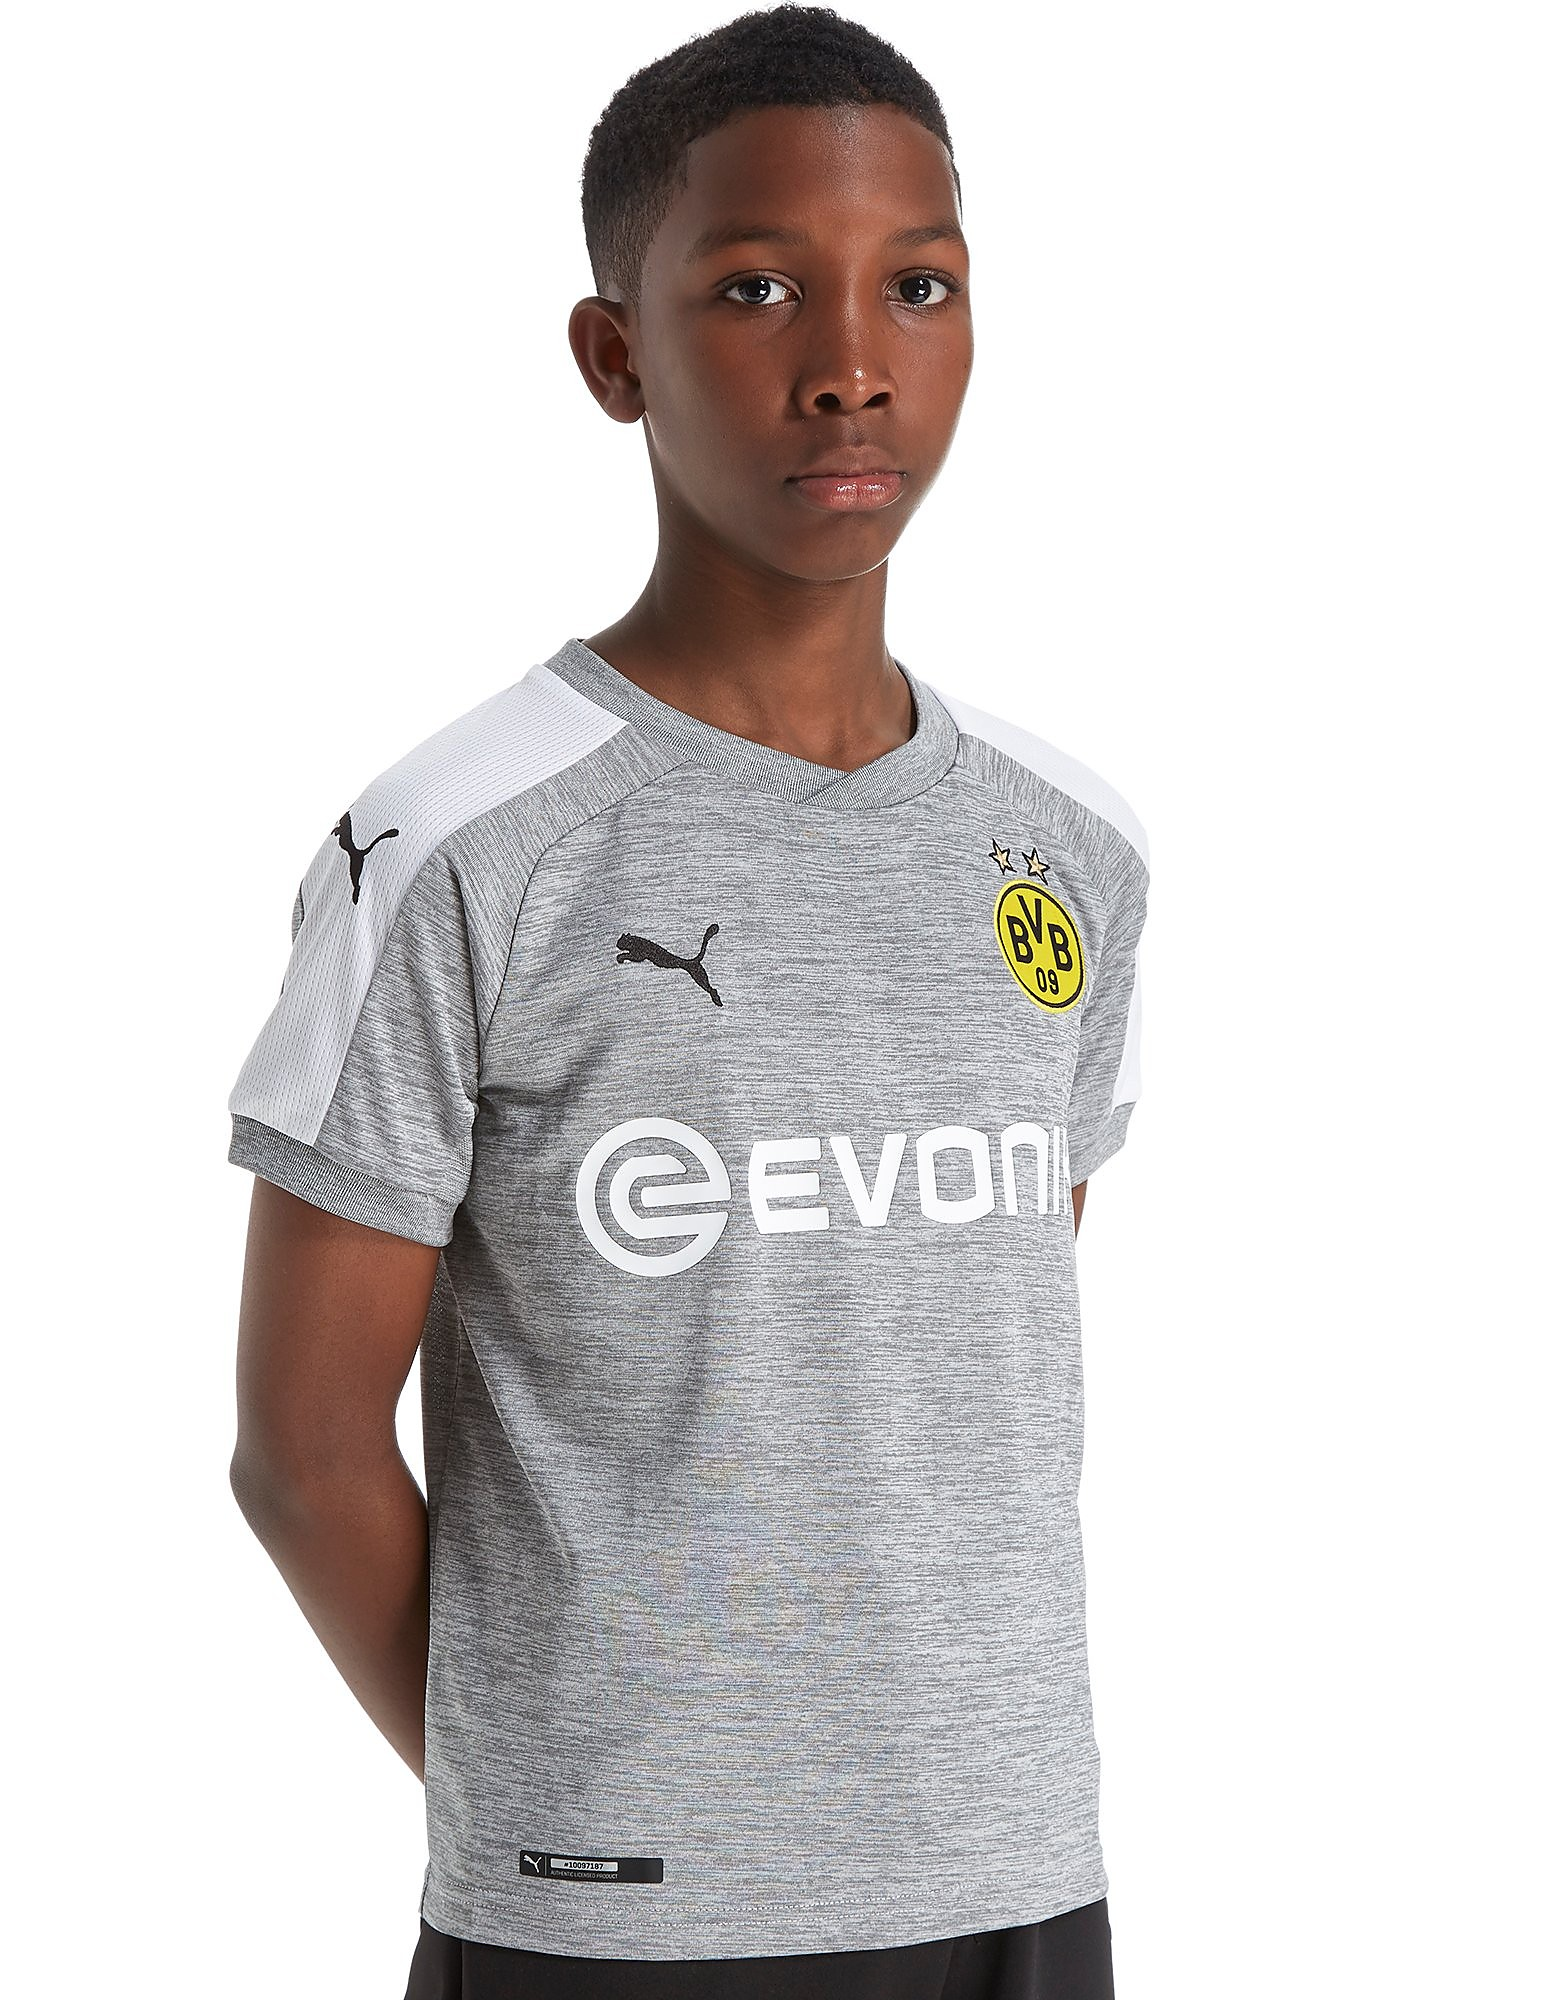 PUMA Borussia Dortmund 2017/18 Third Shirt Junior